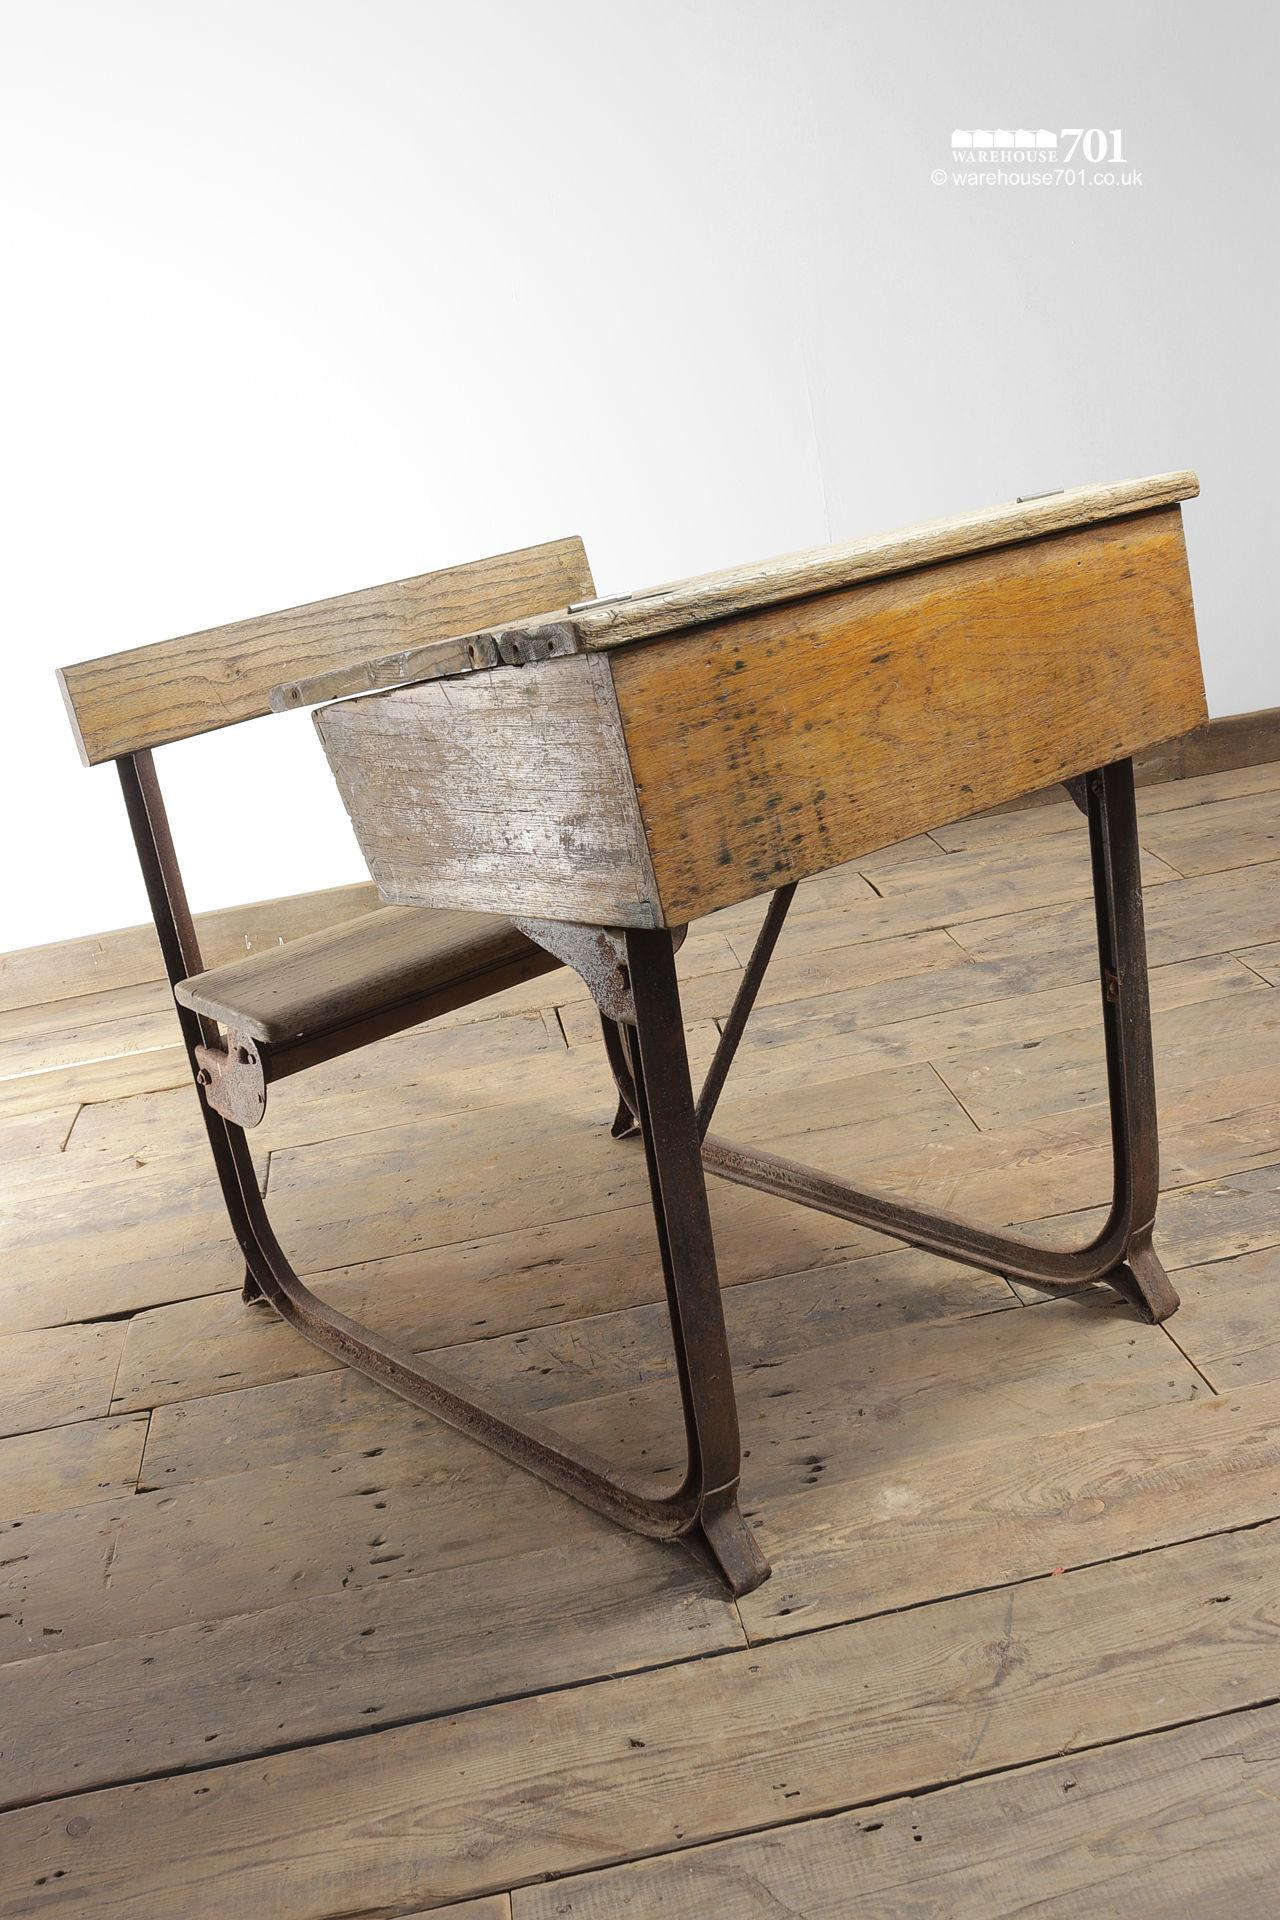 Reclaimed Wooden Childs School Desk and Seat #7